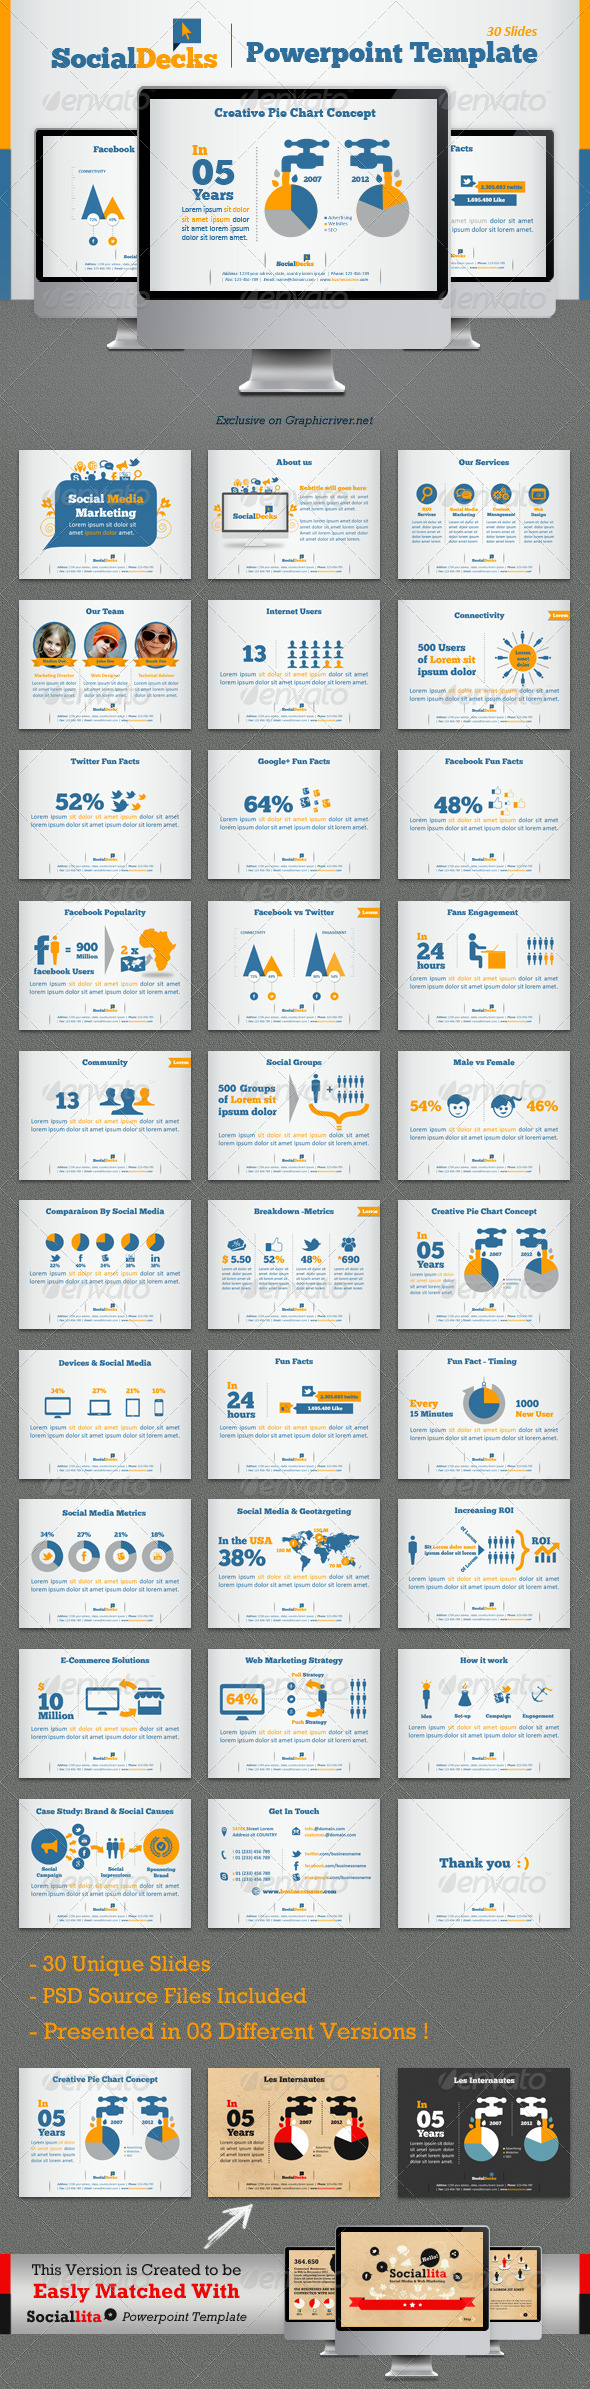 GraphicRiver SocialDecks Powerpoint Template 4450348